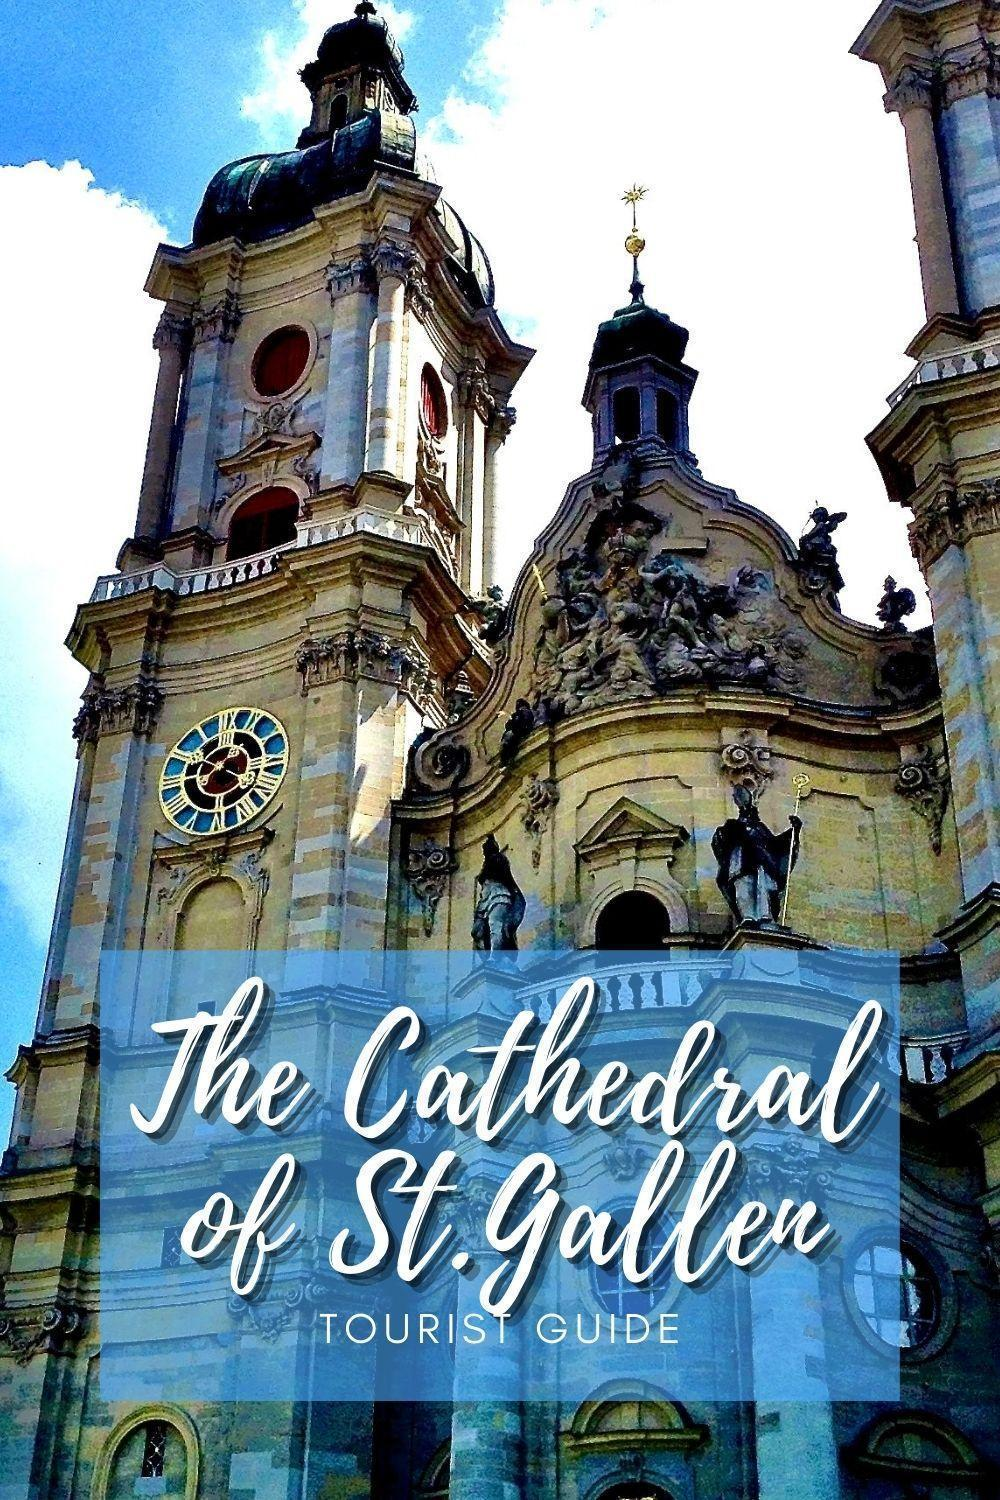 The Cathedral of St.Gallen